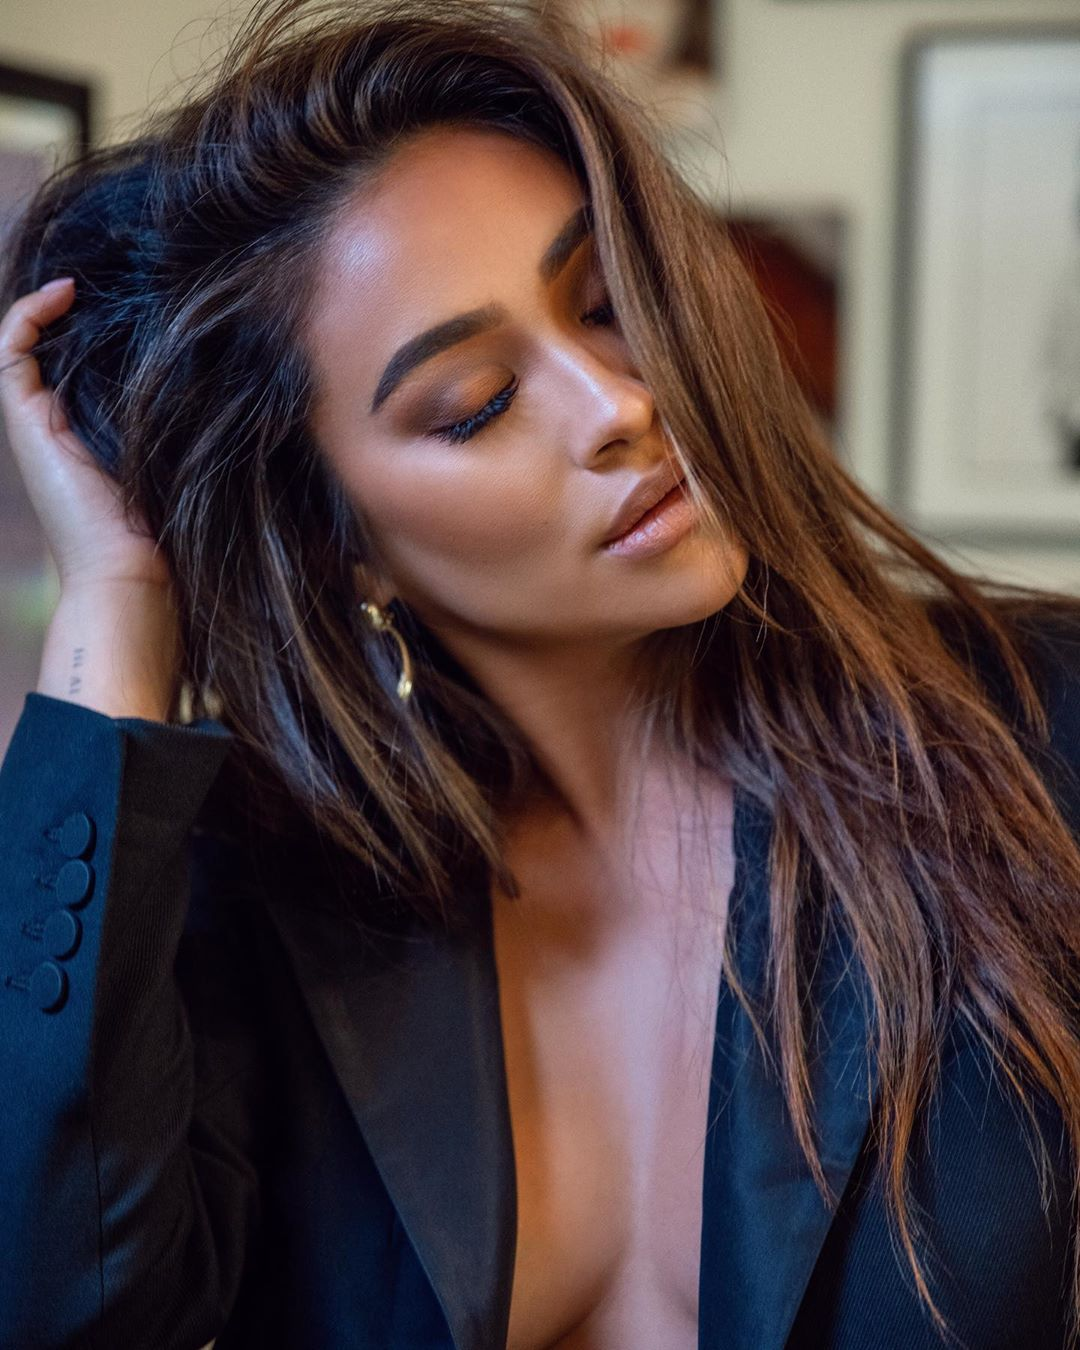 Shay Mitchell On Instagram Does No Shoes No Shirt No Service Still Apply If I Put A Suit Jacket On In 2020 Shay Mitchell Hair Shay Mitchell Hair Styles